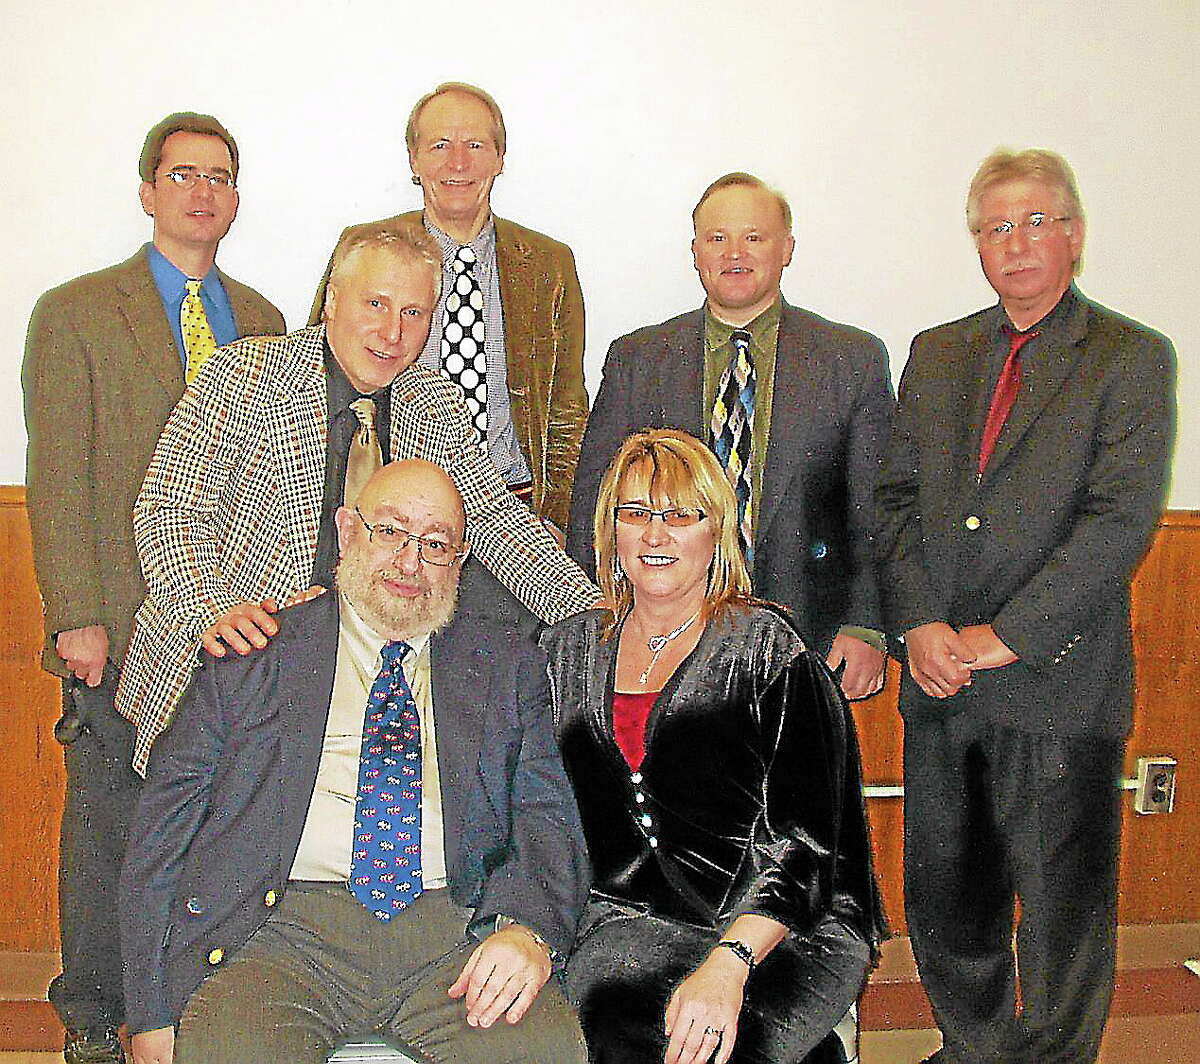 Submitted photo - The Swing LegacyThe Swing Legacy, a Boston-based swing band, will open the season for the Greater Middletown Concert Association on Sunday afternoon, Sept. 29 at Middletown High School.